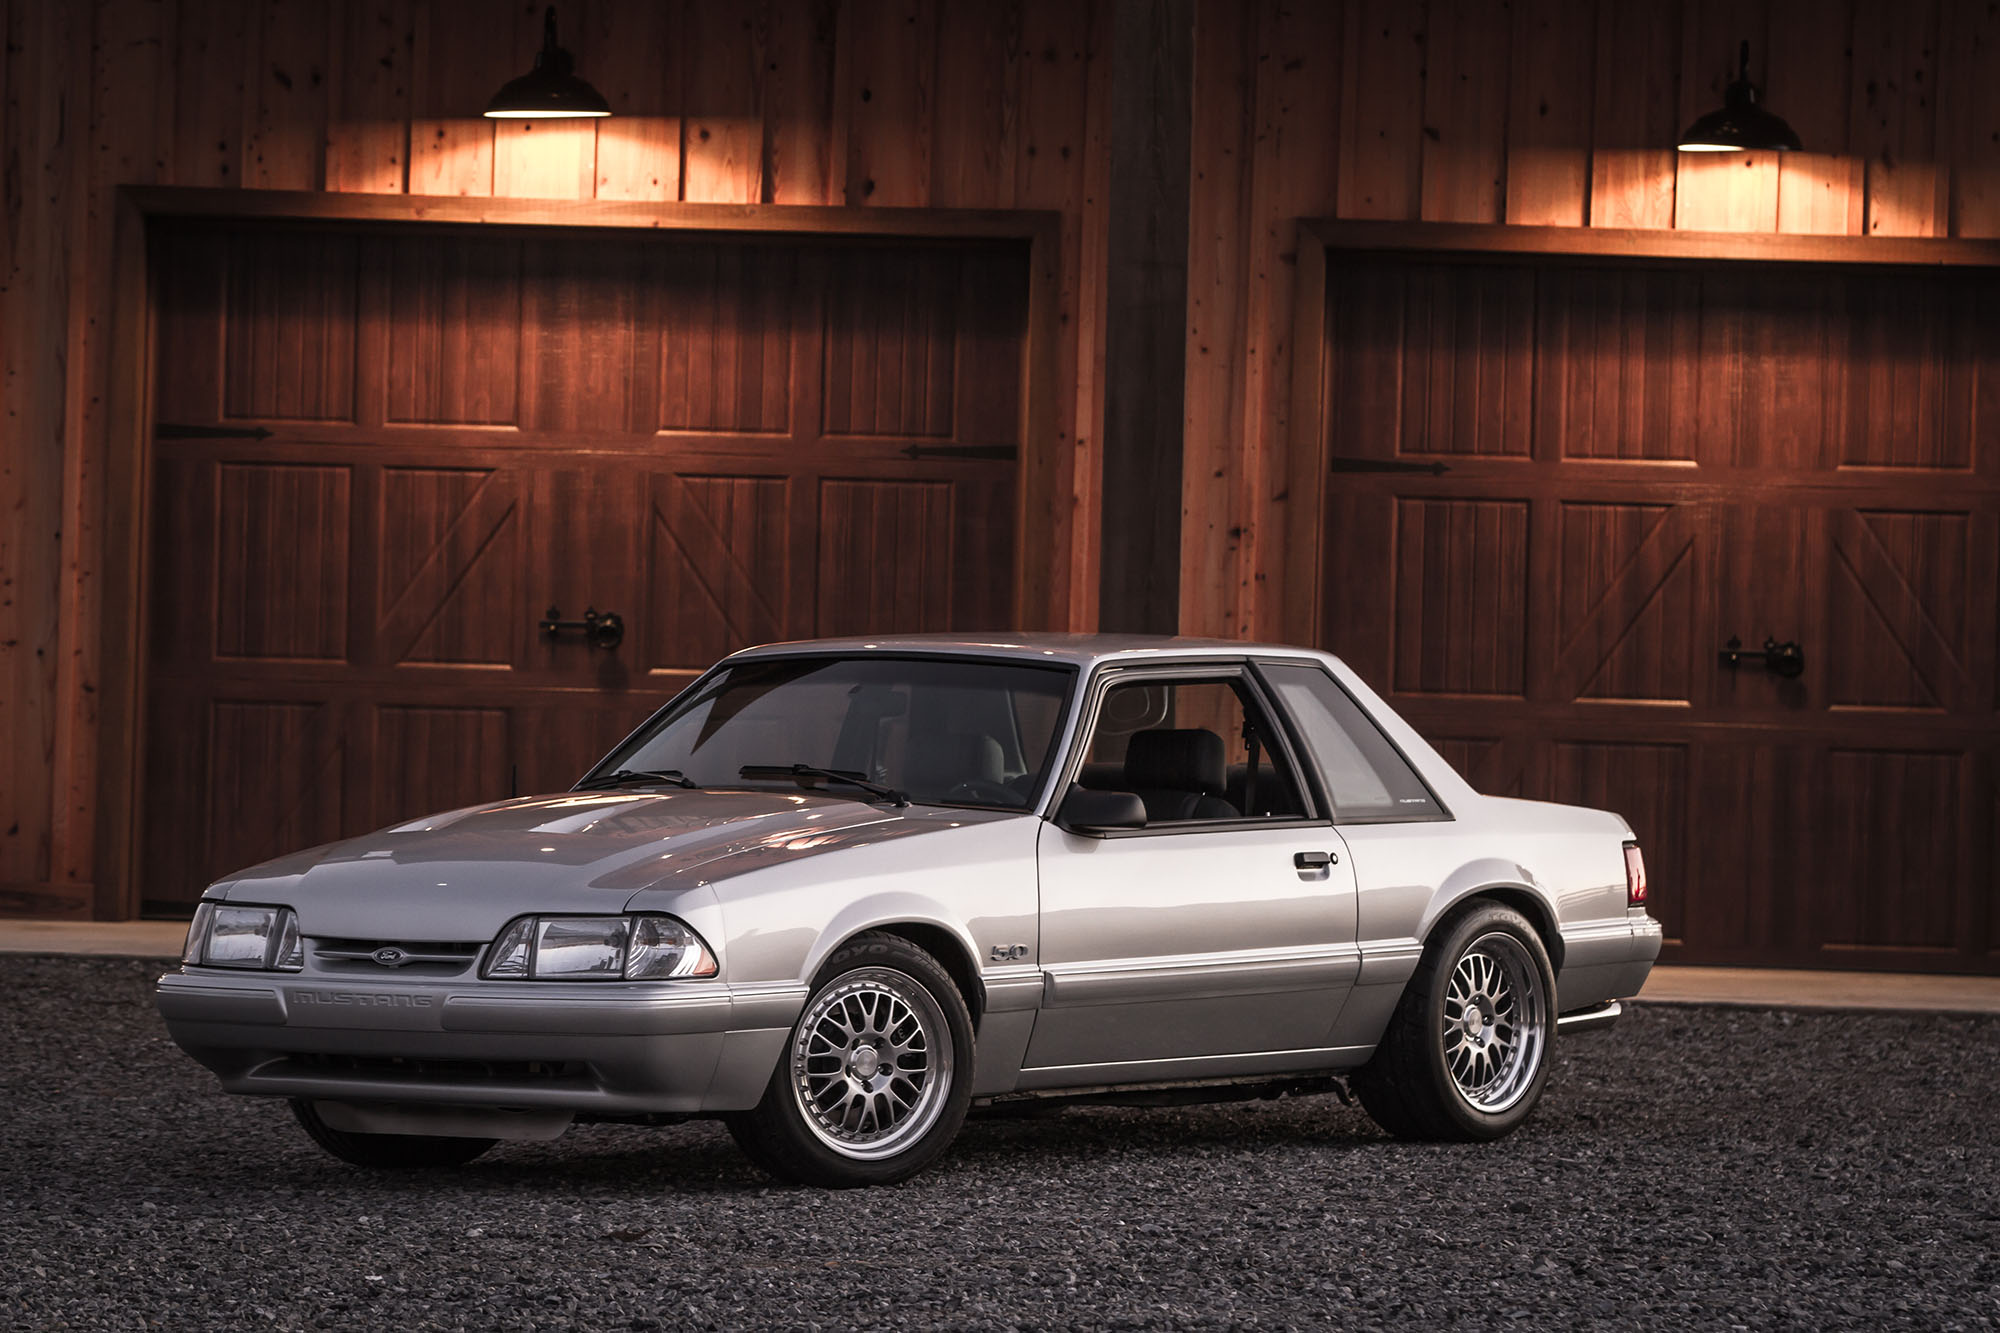 1991 Notchback Mustang front